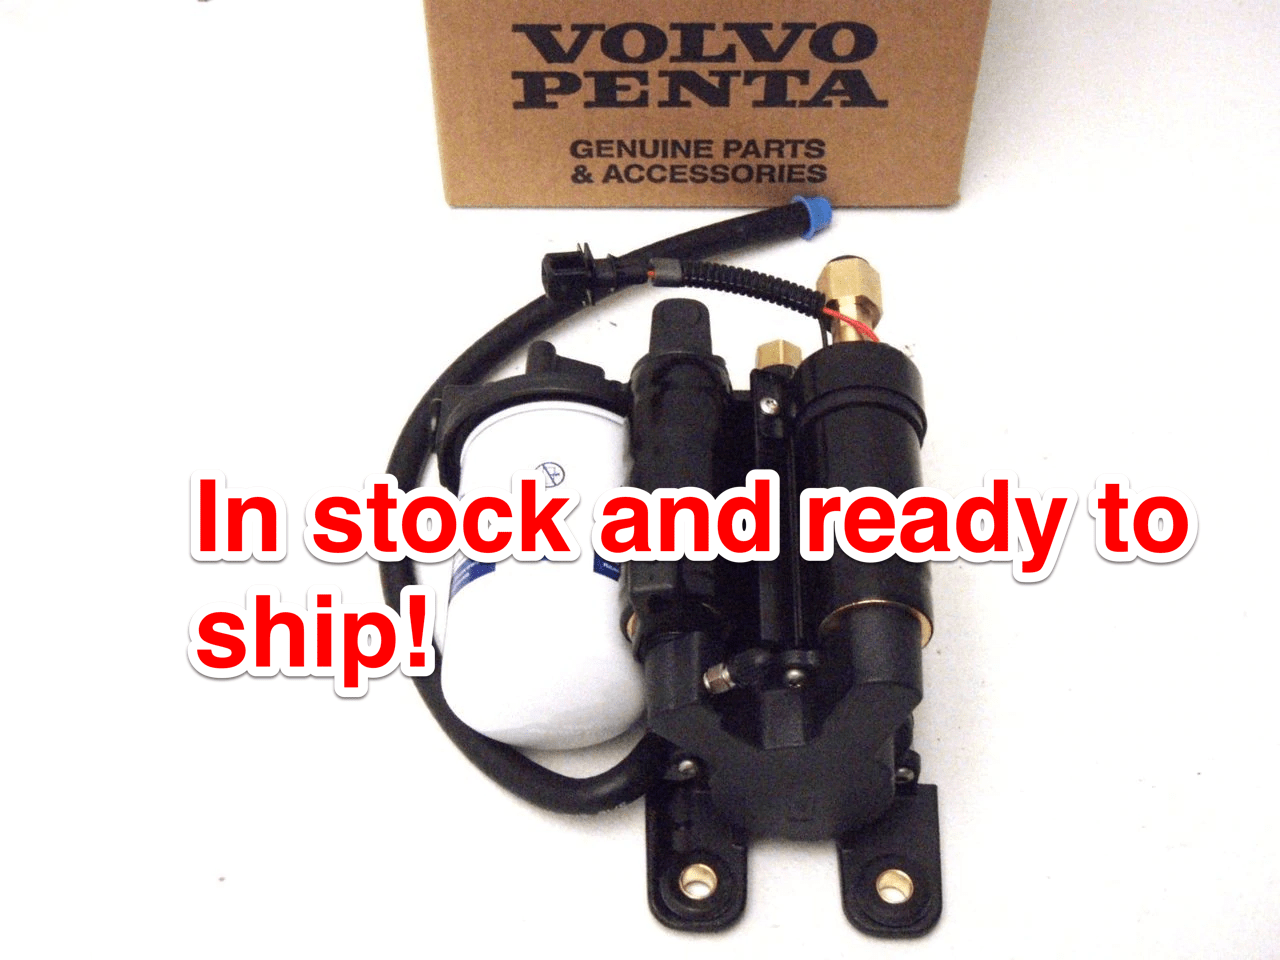 hight resolution of  849 99 genuine volvo fuel pump 21608511 in stock ready to ship